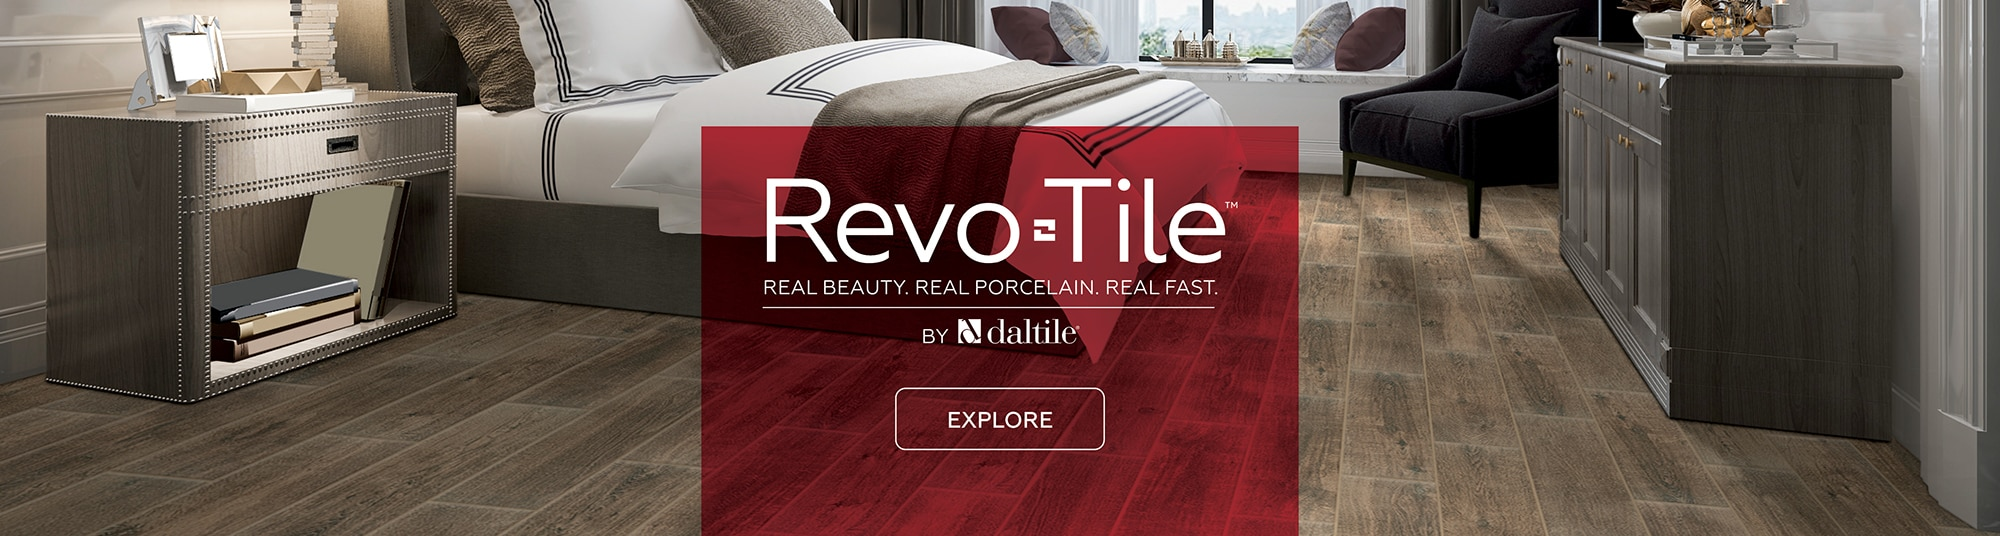 DAL_RevoTile_MainHeader1_Updated_1440x386_banner